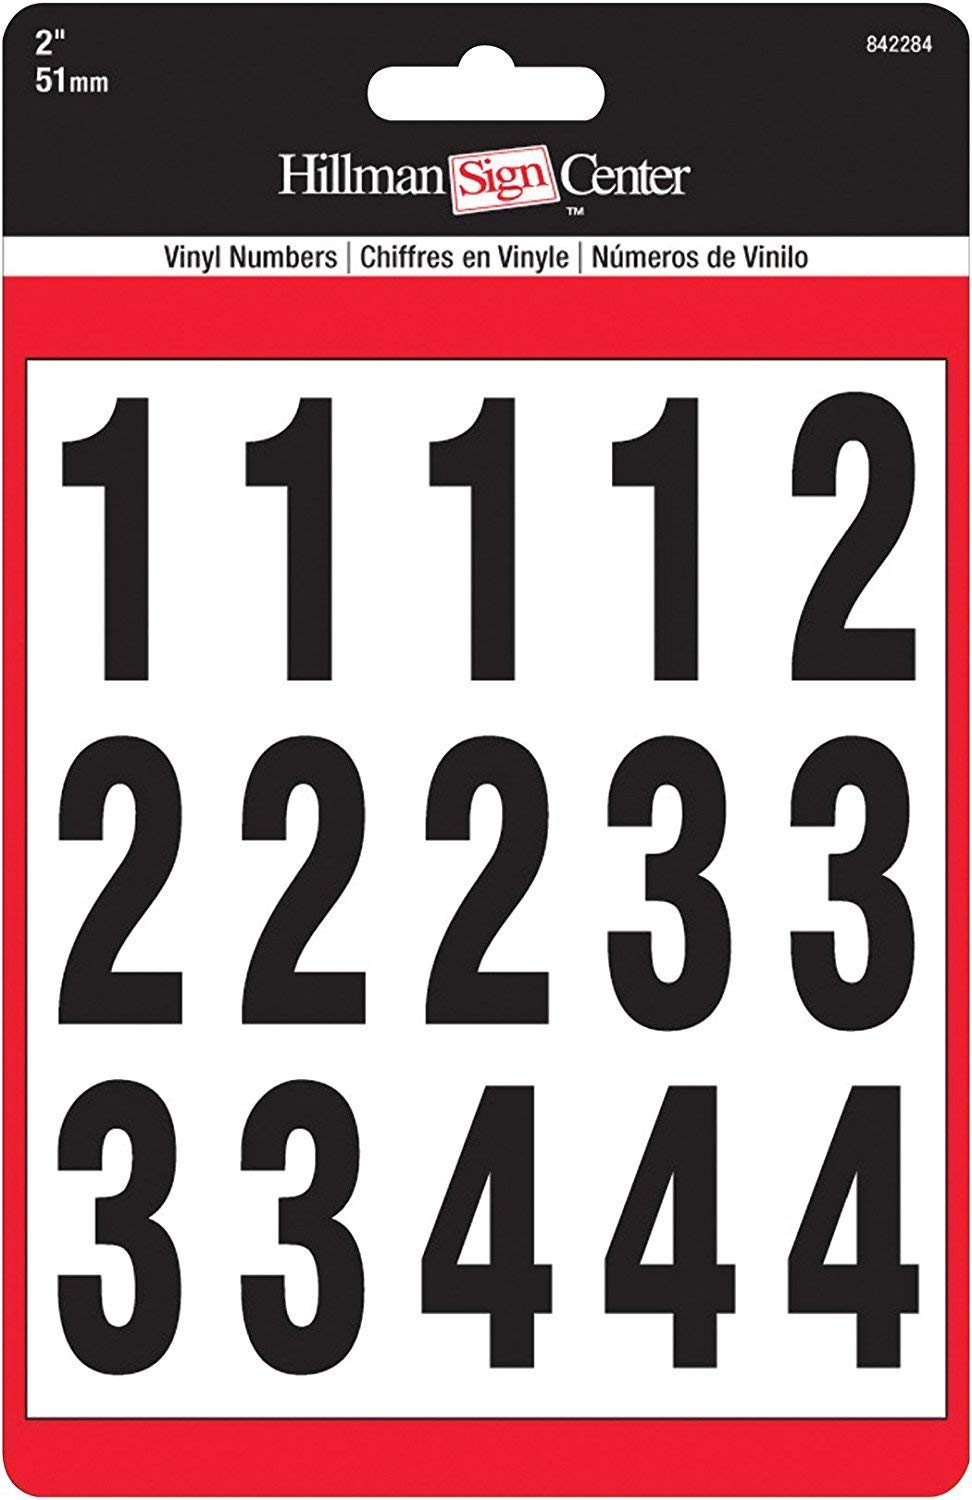 2-Inch Numbers Kit, Black on White, Square-Cut Mylar, Self-Adhesive (842284) - Six (6) Packs (Kits)